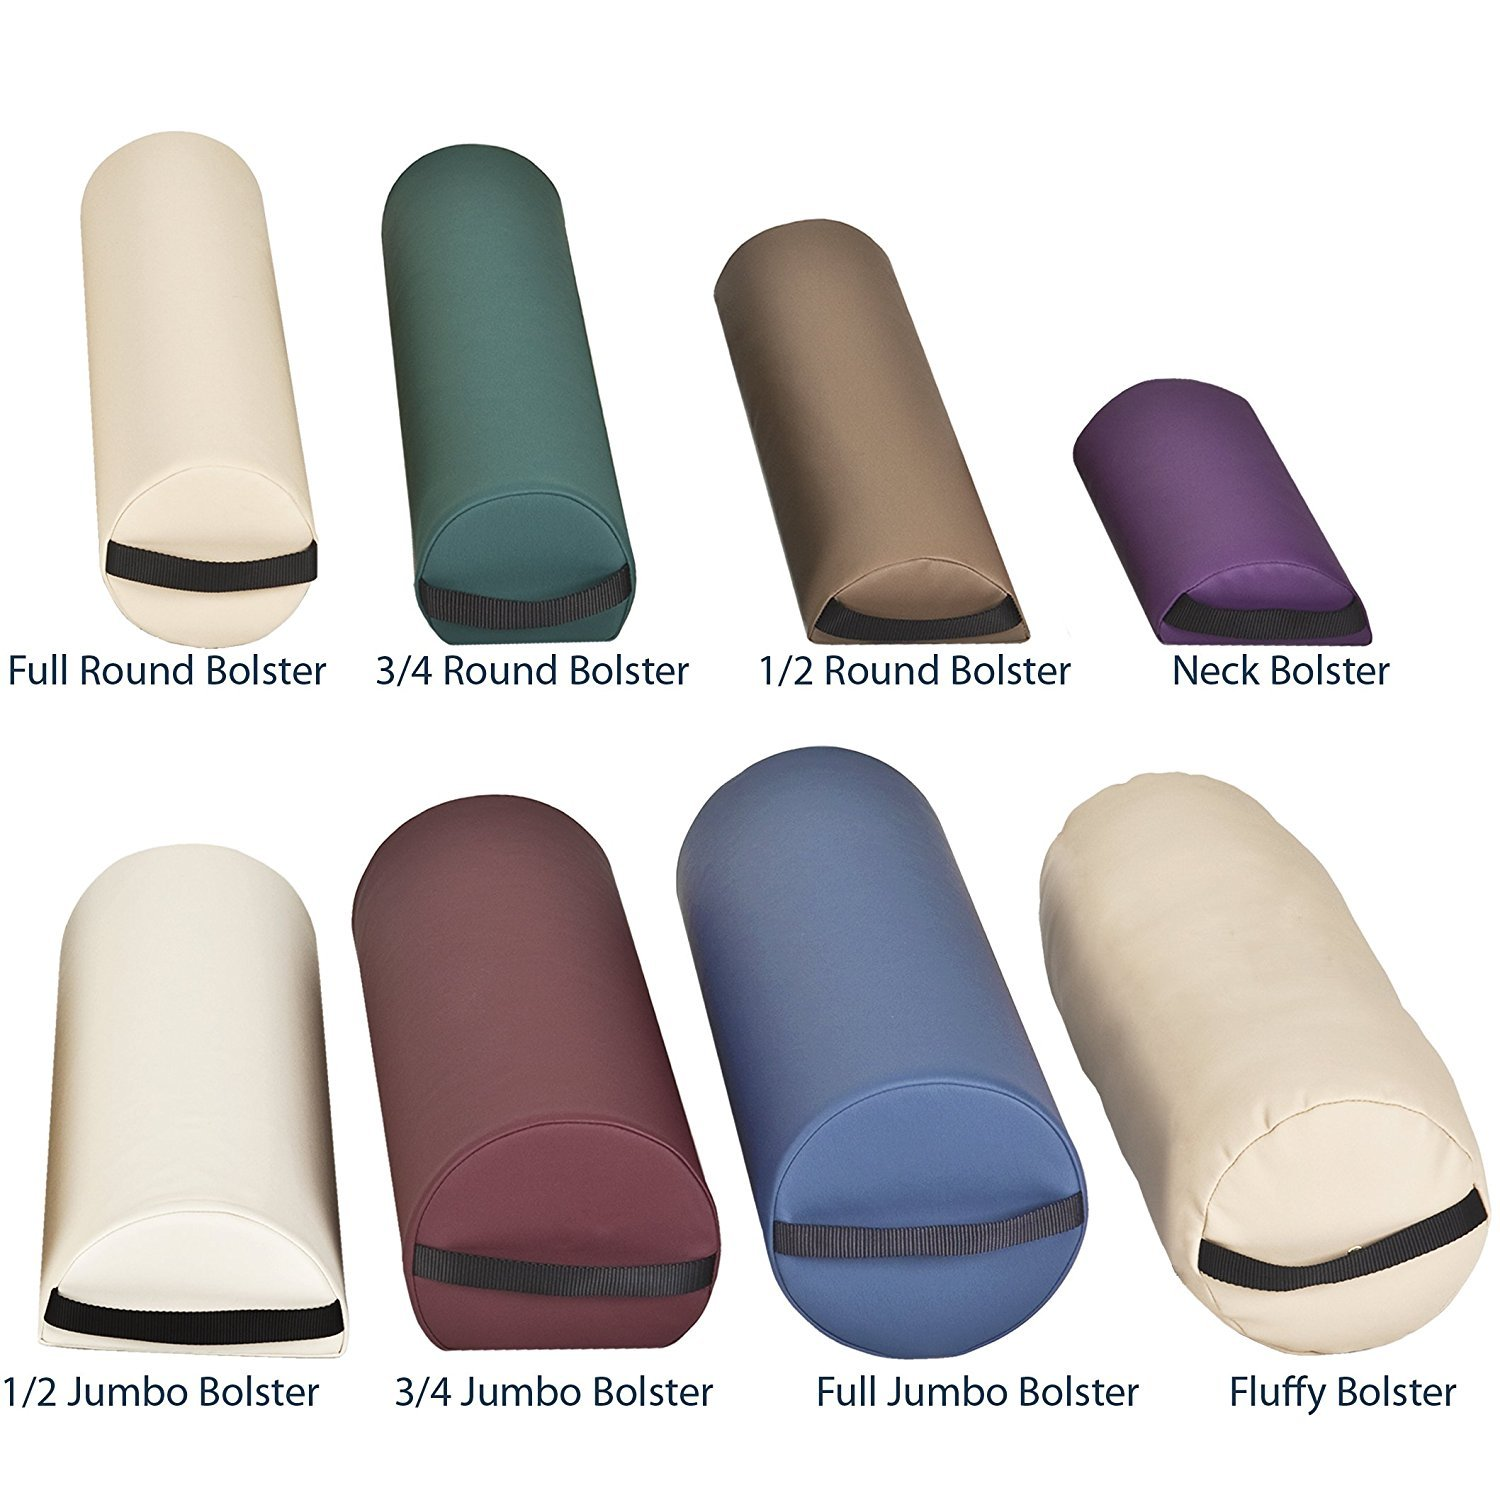 EARTHLITE Bolster 3/4 Round – Durable Massage Bolster in Various Colors incl. Strap Handle